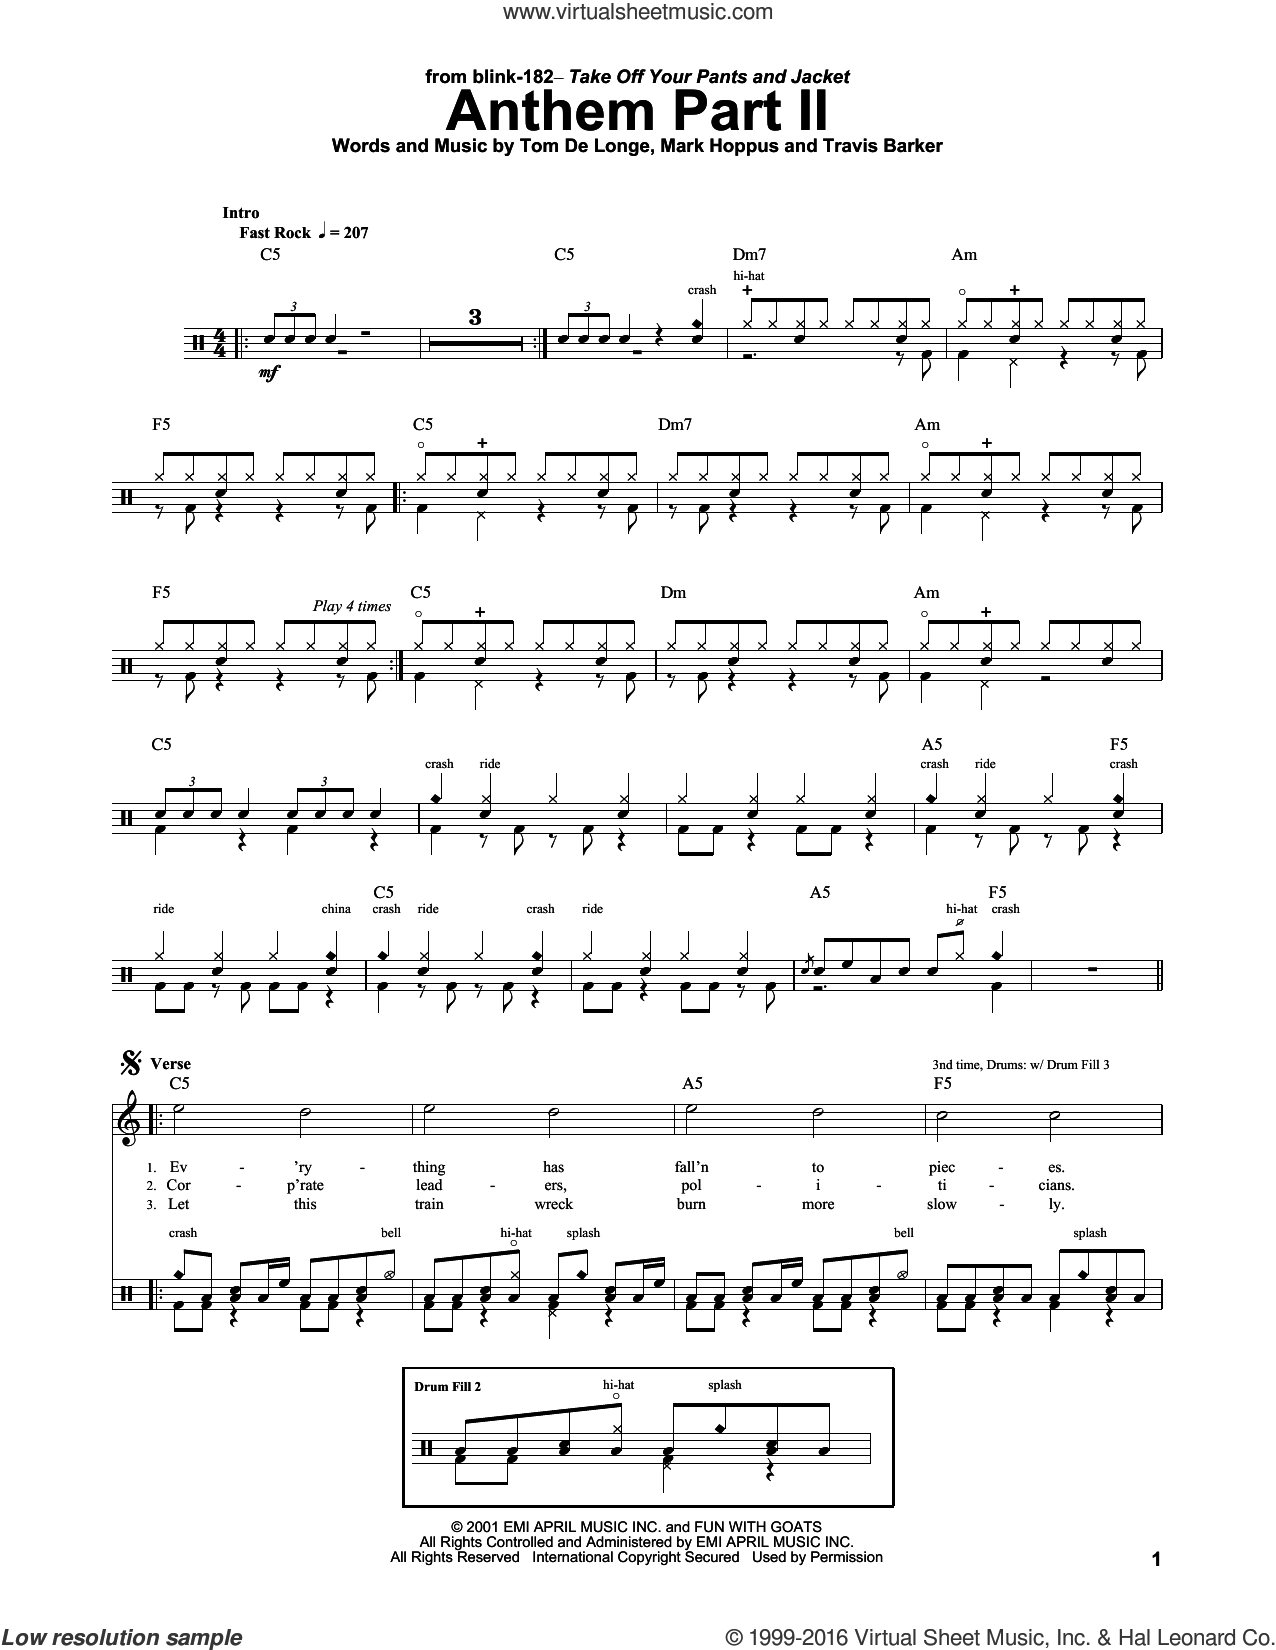 Anthem Part II sheet music for drums by Blink 182, Mark Hoppus, Tom DeLonge and Travis Barker, intermediate skill level